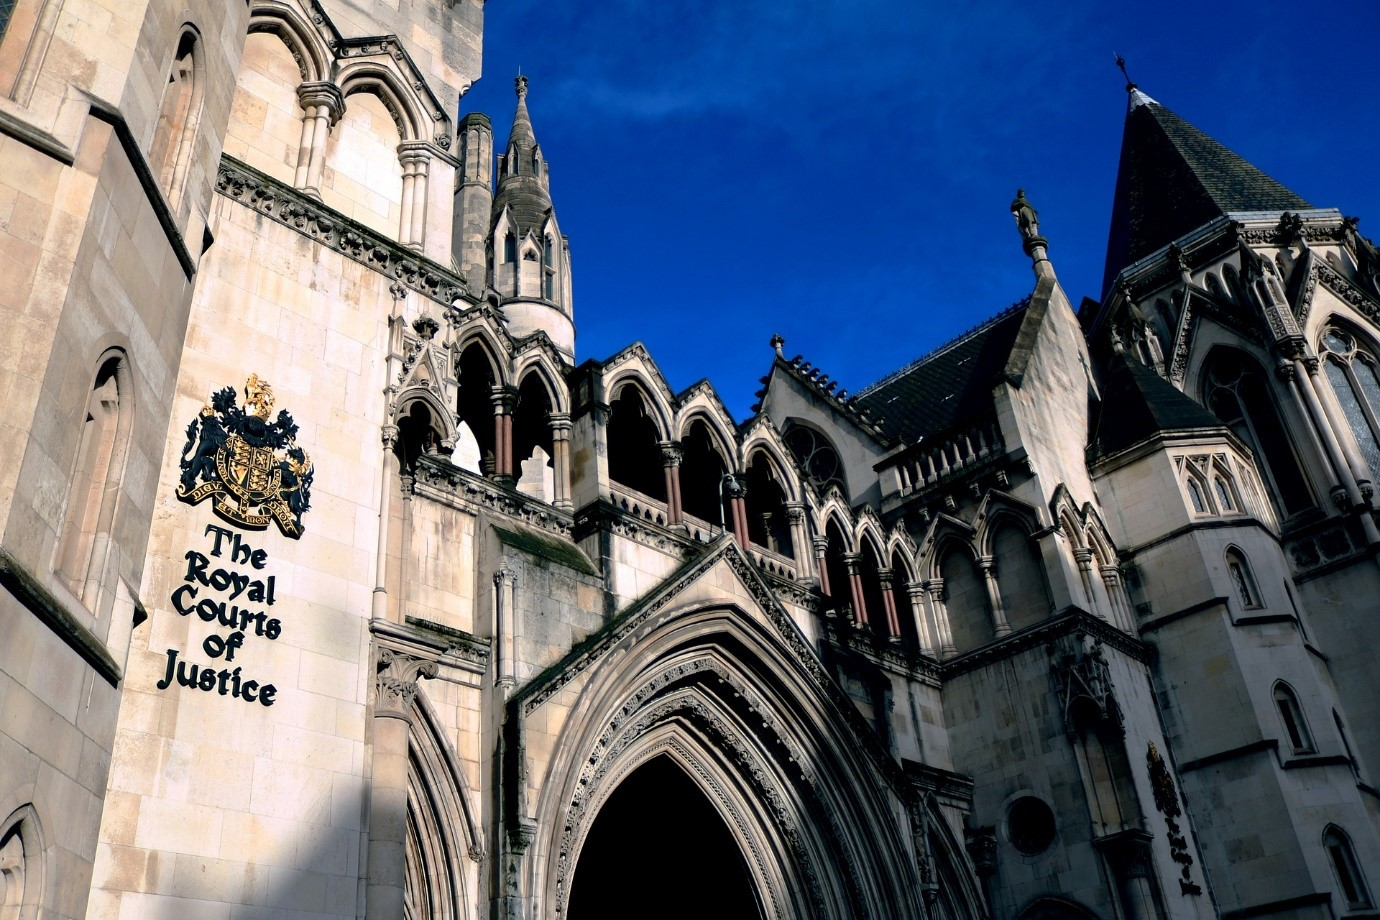 Royal courts of justice image